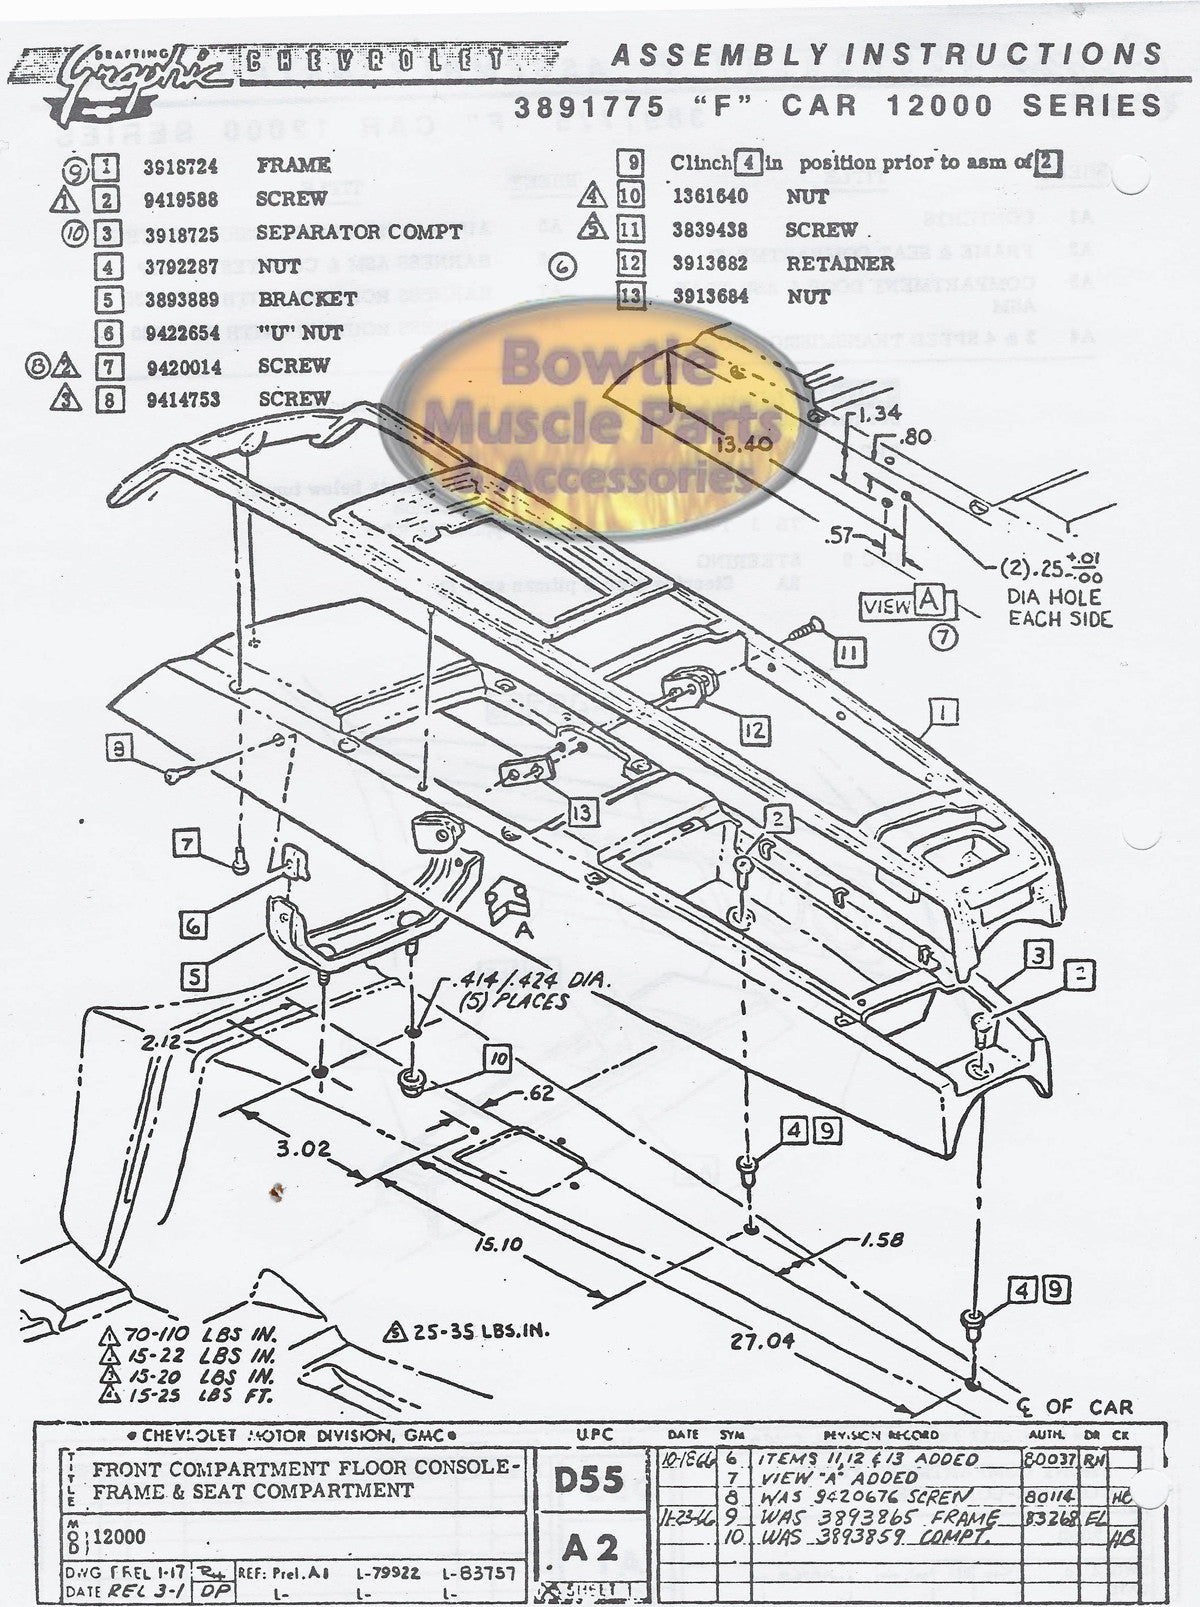 Soul Kia Gdi Engine Diagrams further 7weqz Ford Ranger 4x2 1995 Ford Ranger 2 3 Speed Manual Turns moreover Jeep Liberty V6 Timing Chain Diagram likewise 1980 Corvette Headlight Wiring Diagram additionally John Deere L100 Mower Deck Belt Diagram. on ford manual transmission parts diagrams